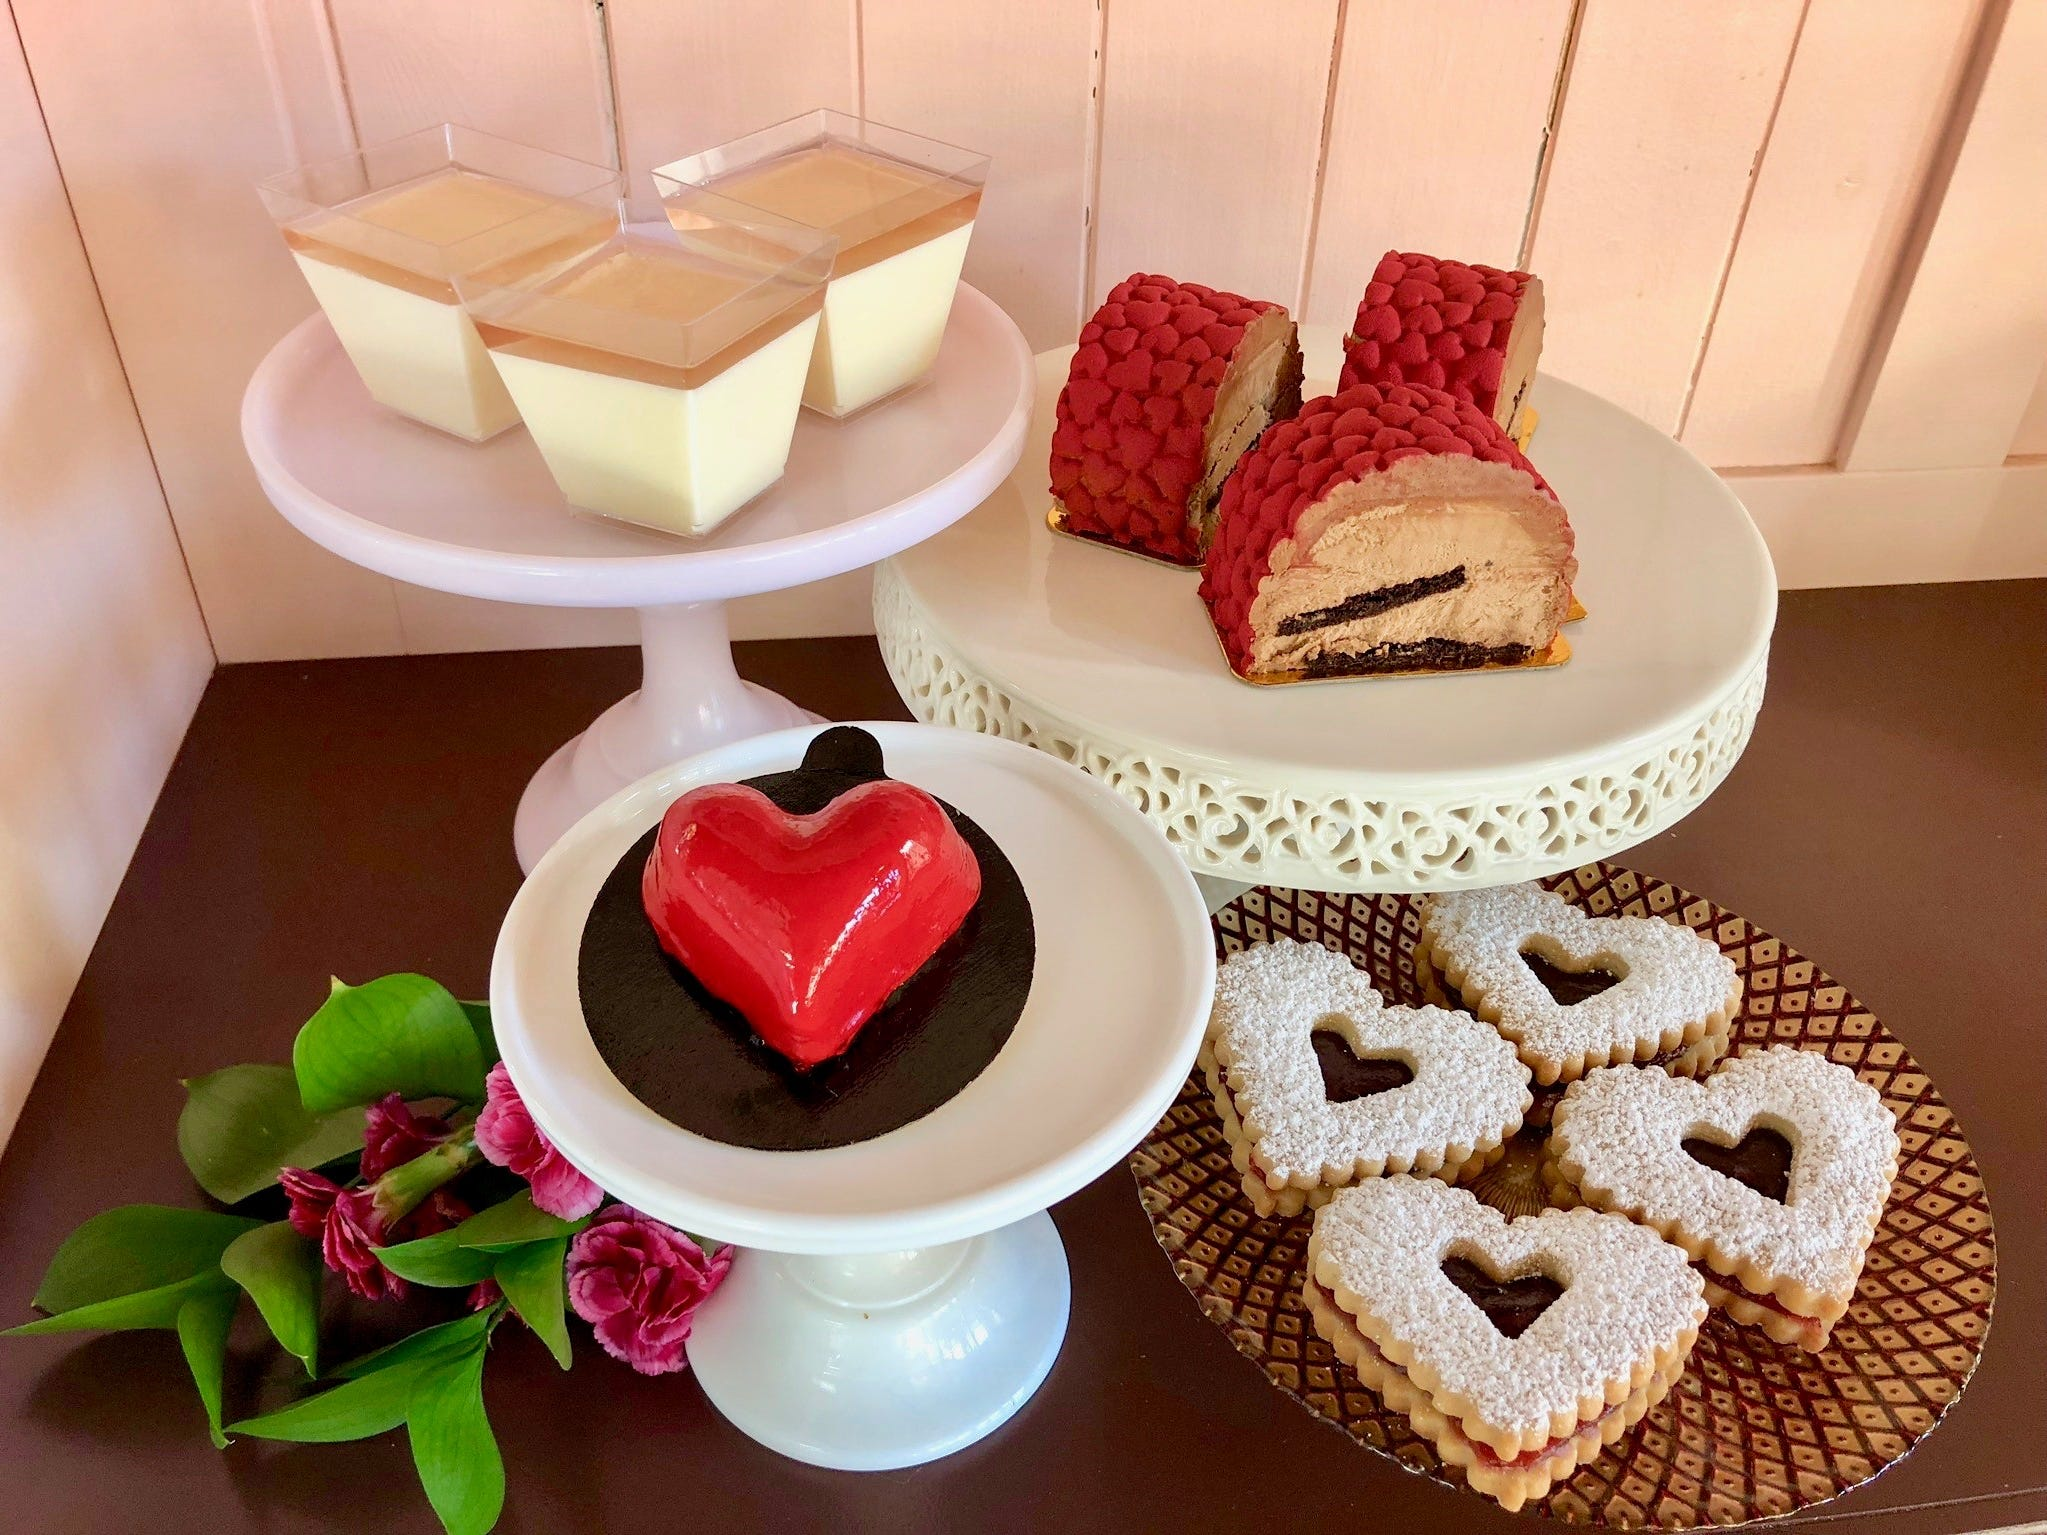 Valentine's Day offerings at Antoinette Boulangerie in Red Bank include (clockwise from top left) champagne rosé panna cotta, milk chocolate mousse cake, raspberry Linzer cookies, and  a heart-shaped vanilla cake filled with raspberry mousse and lavender cream.